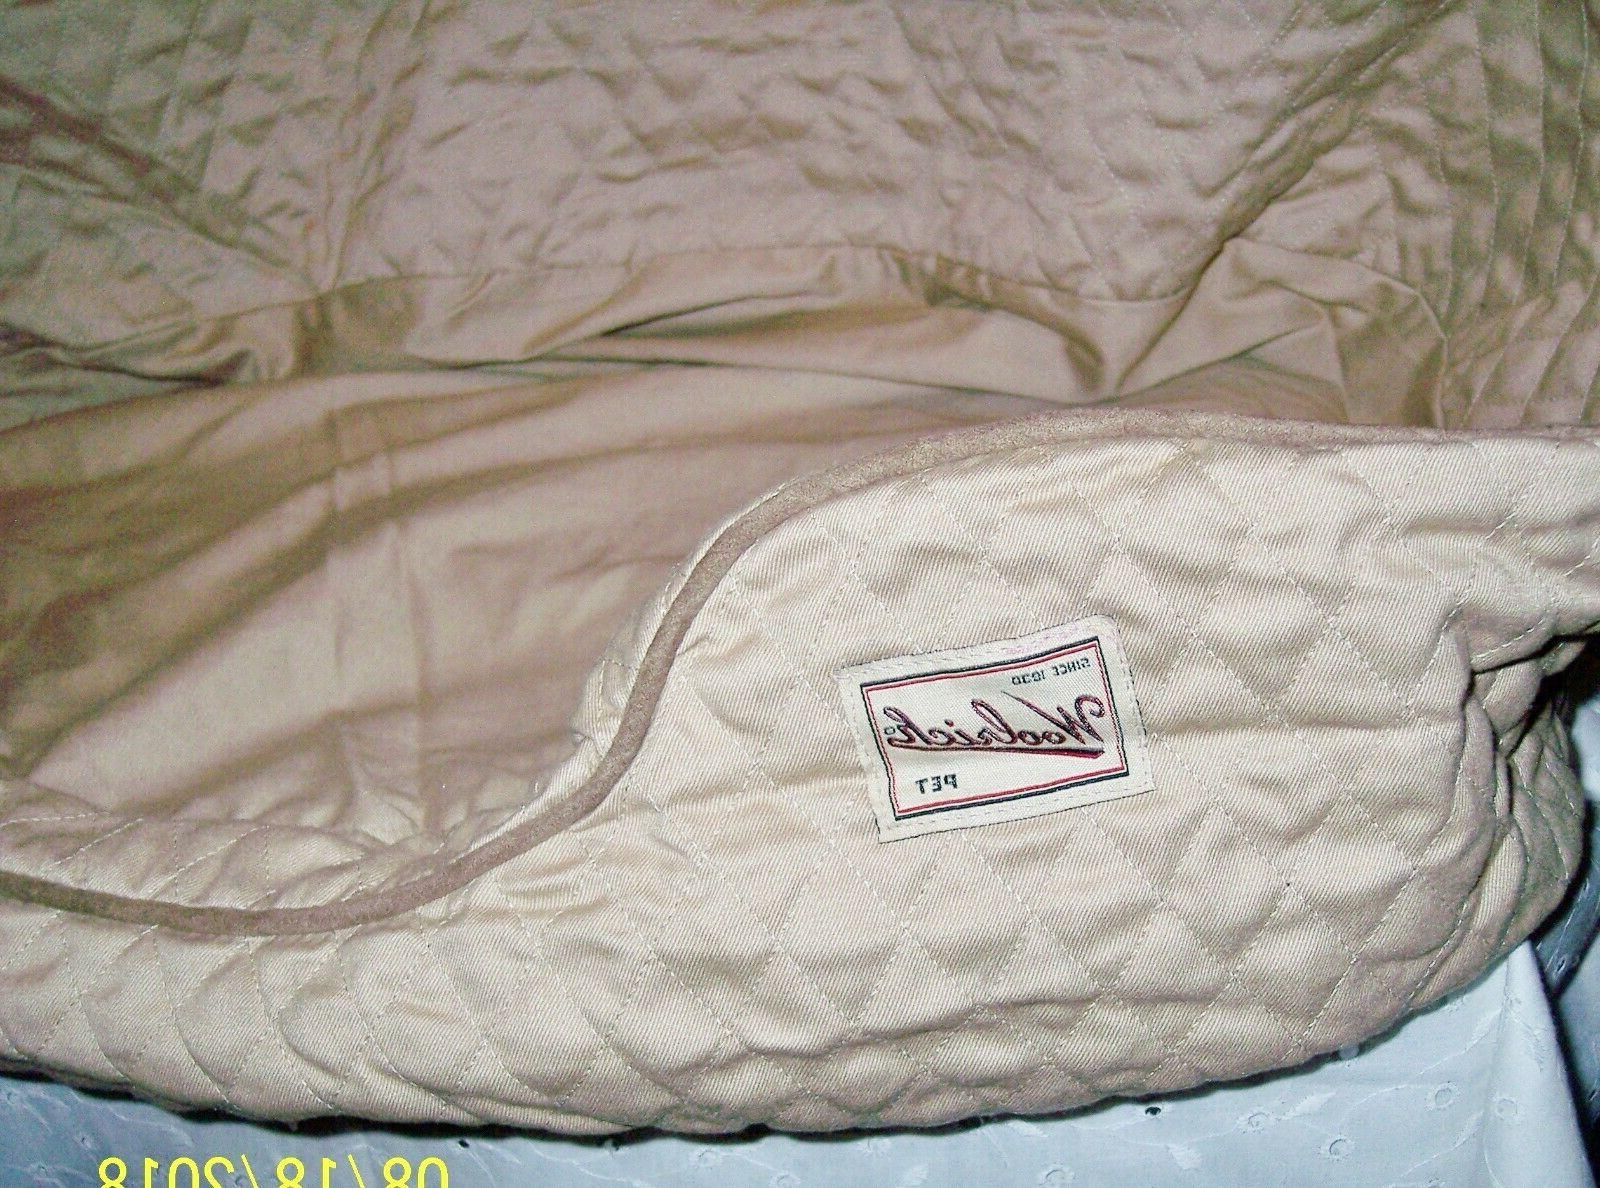 DOG NESTING BED COZY BY OR KHAKI COLOR